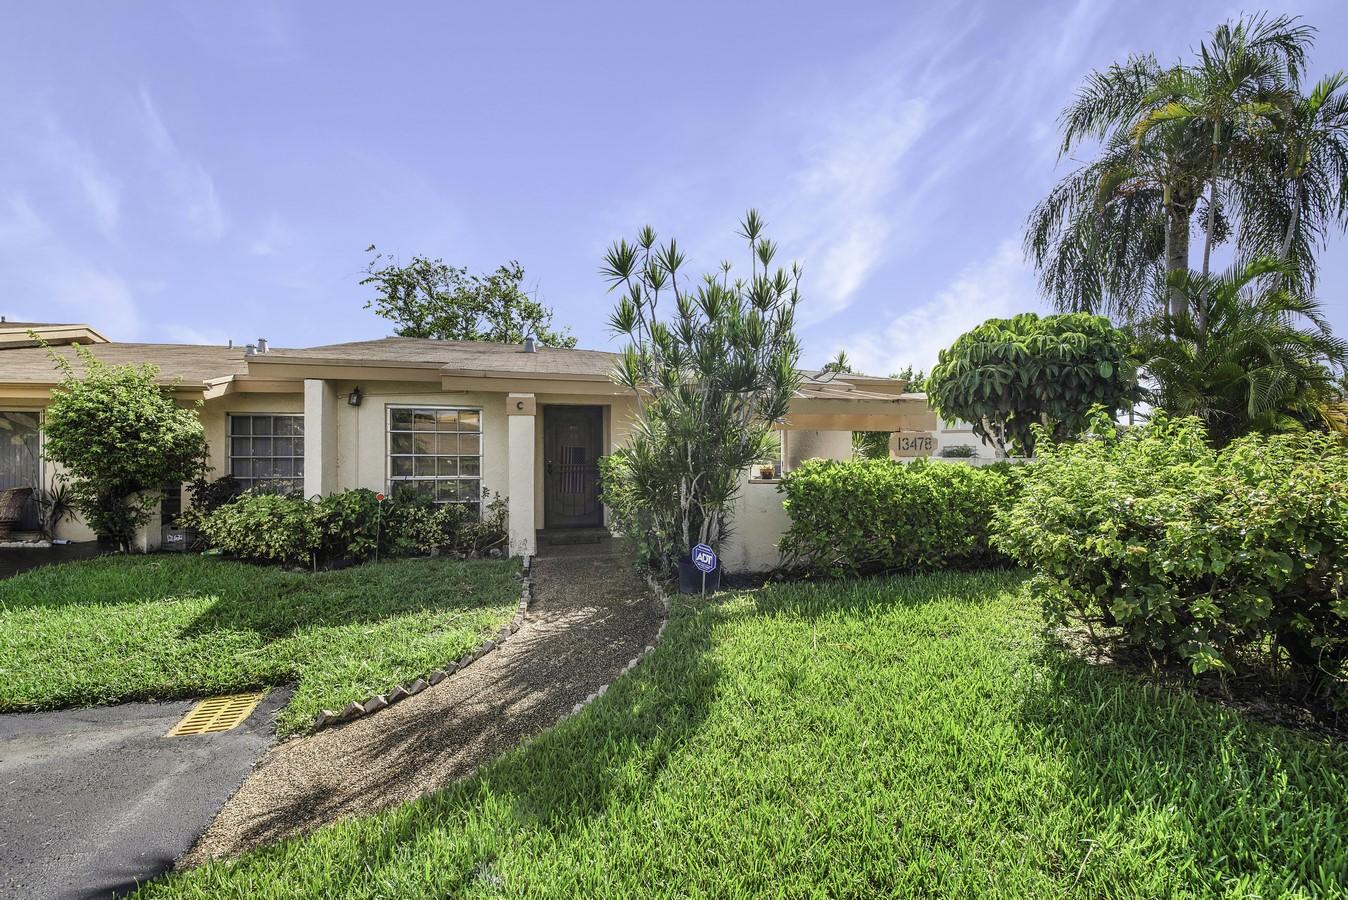 13478 Sabal Palm Court C Delray Beach, FL 33484 small photo 20